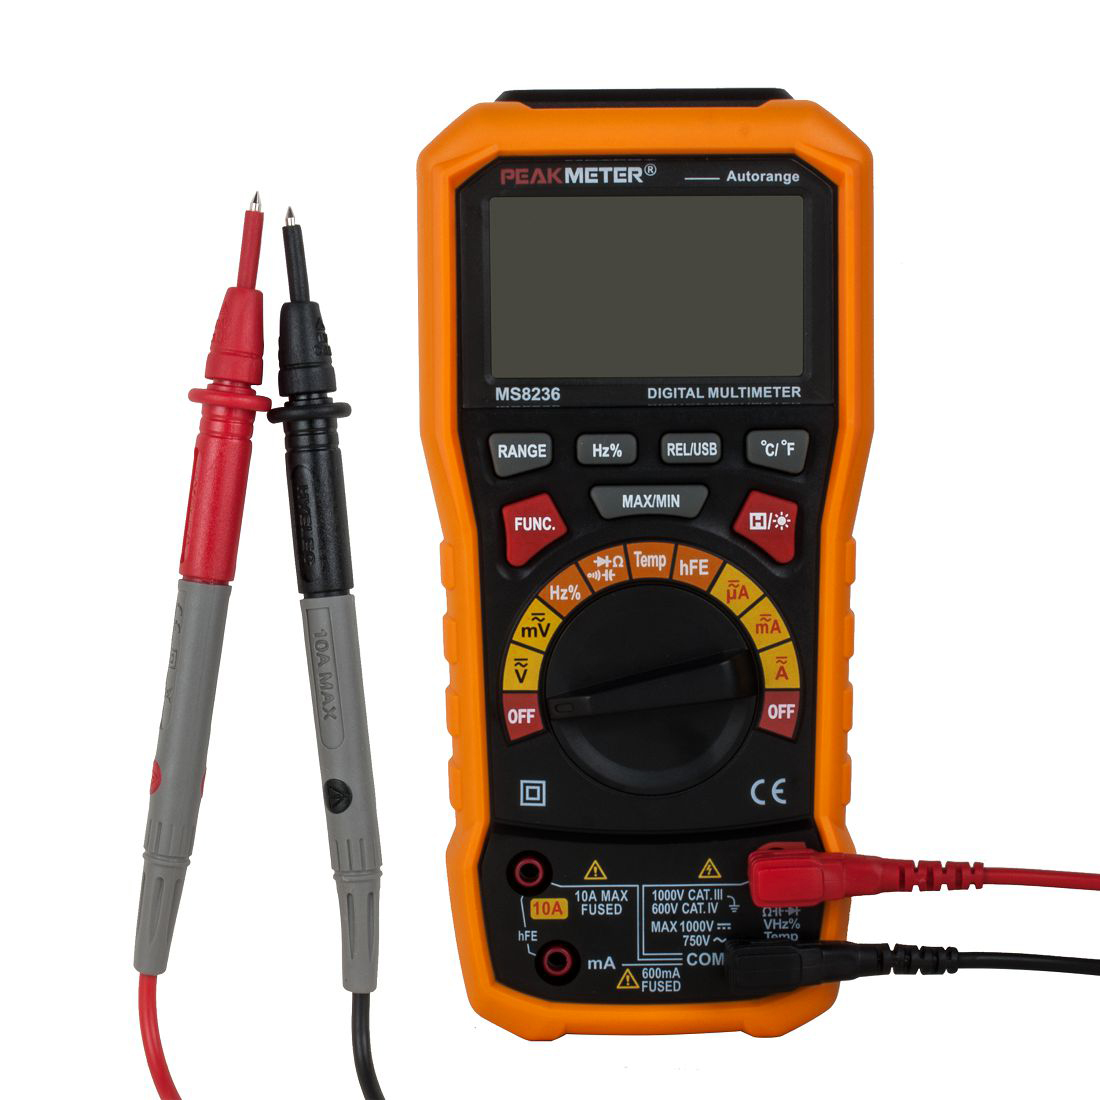 UXCELL Digital Multimeter Ac/ Voltage Current Resistance Capacitance Frequency Temperature Tester Meter 600mv/6v/60v/600v/1000v 1 pcs mastech ms8269 digital auto ranging multimeter dmm test capacitance frequency worldwide store